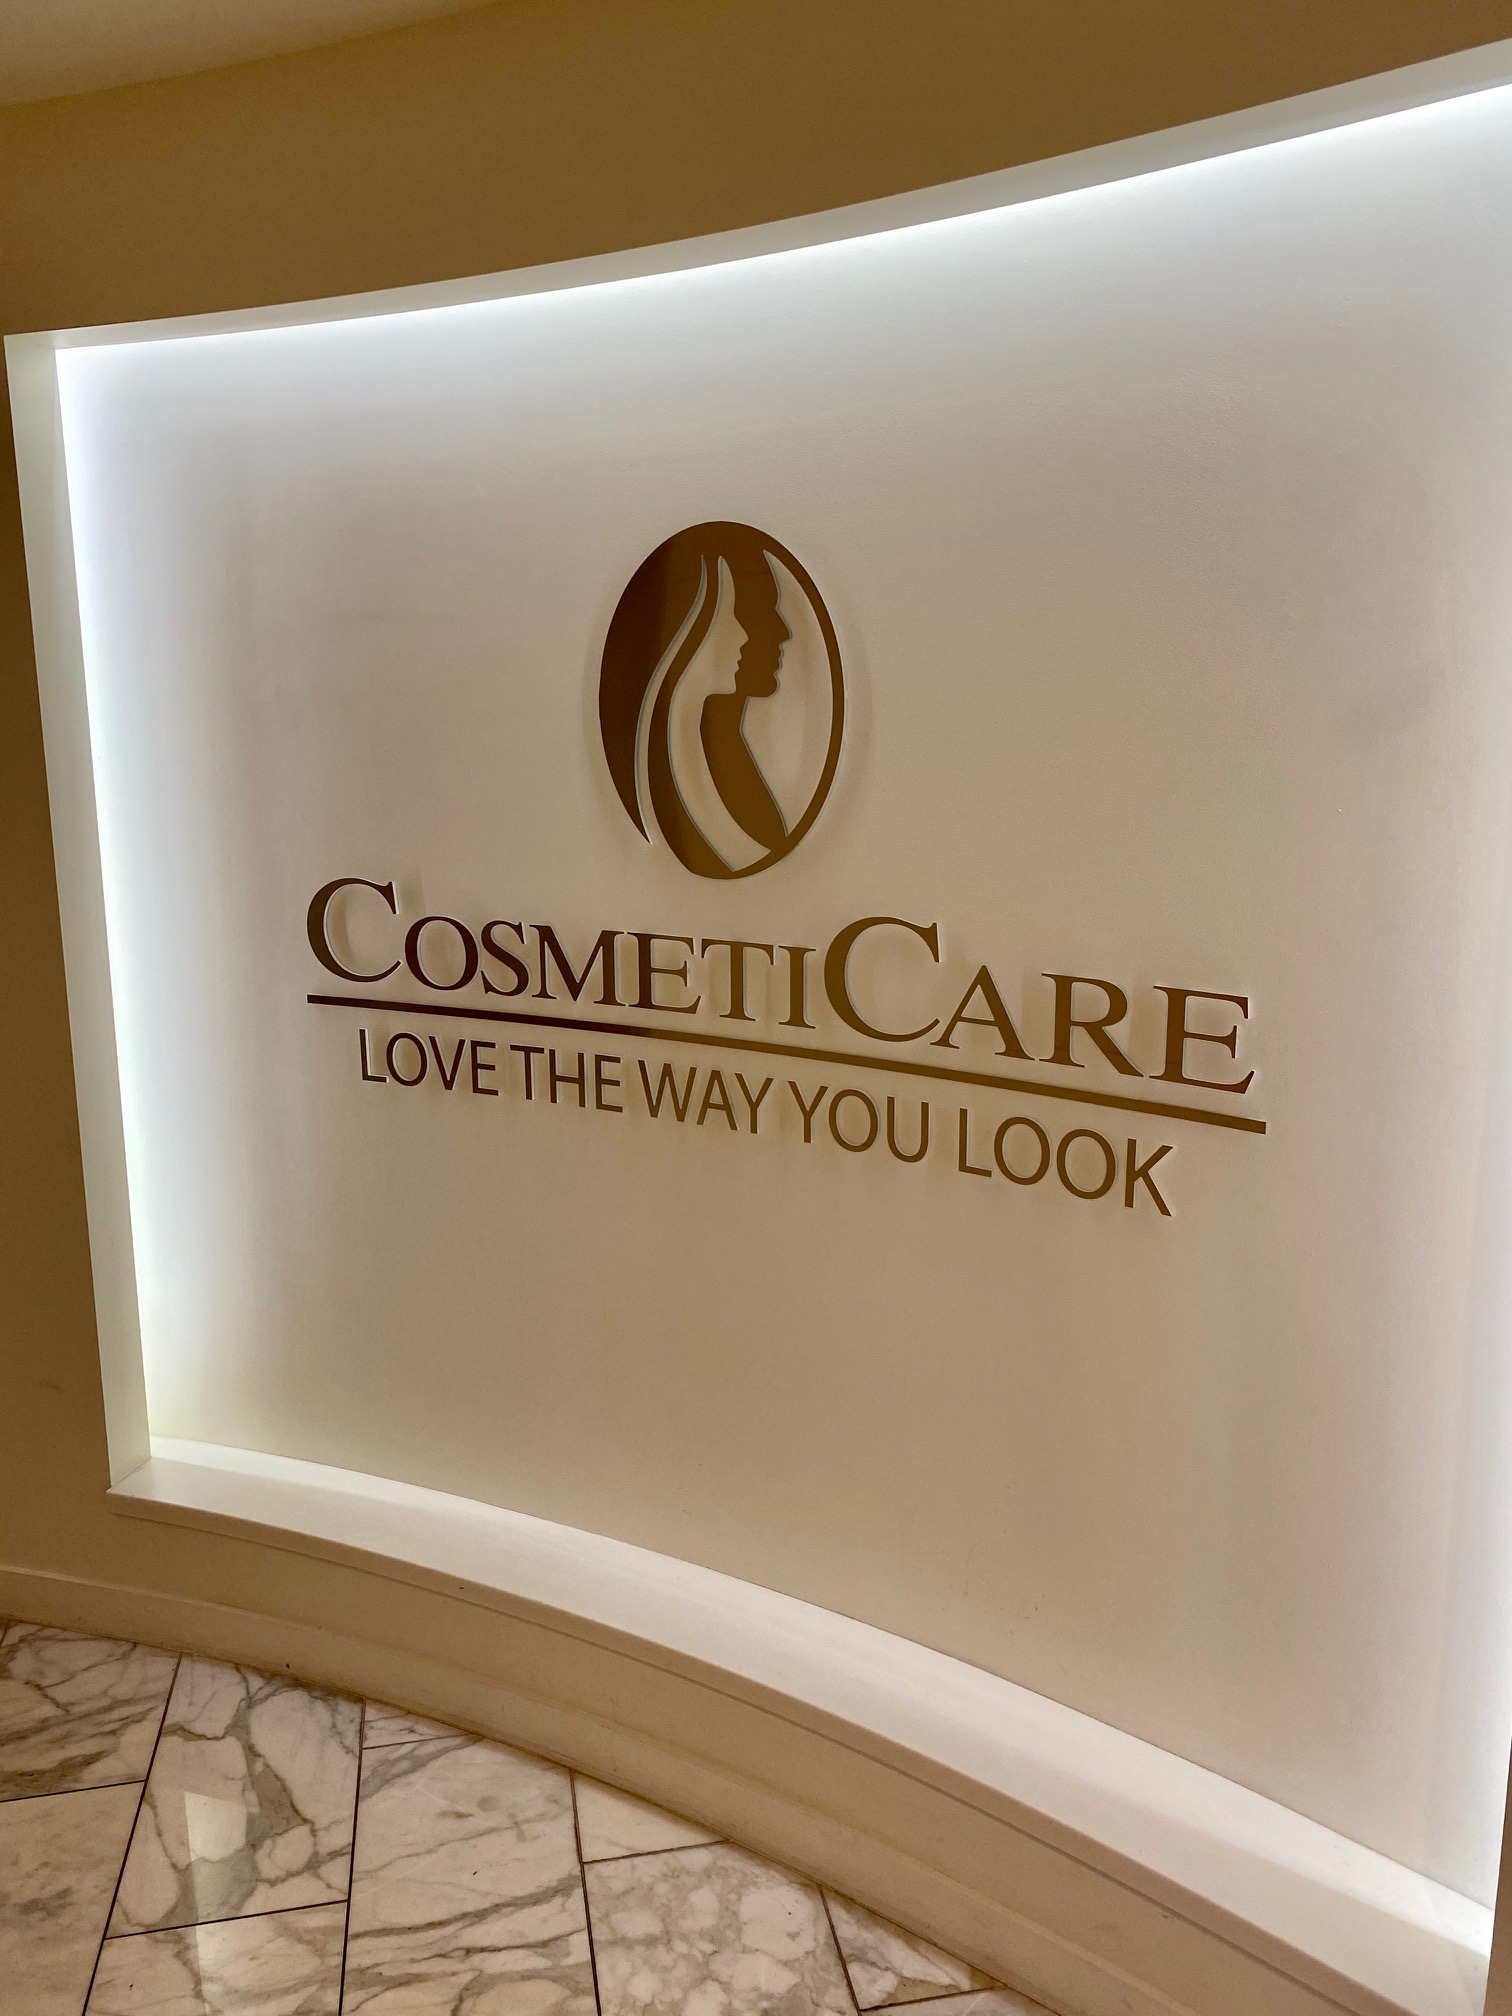 cosmeticare plastic surgery and medspa lobby